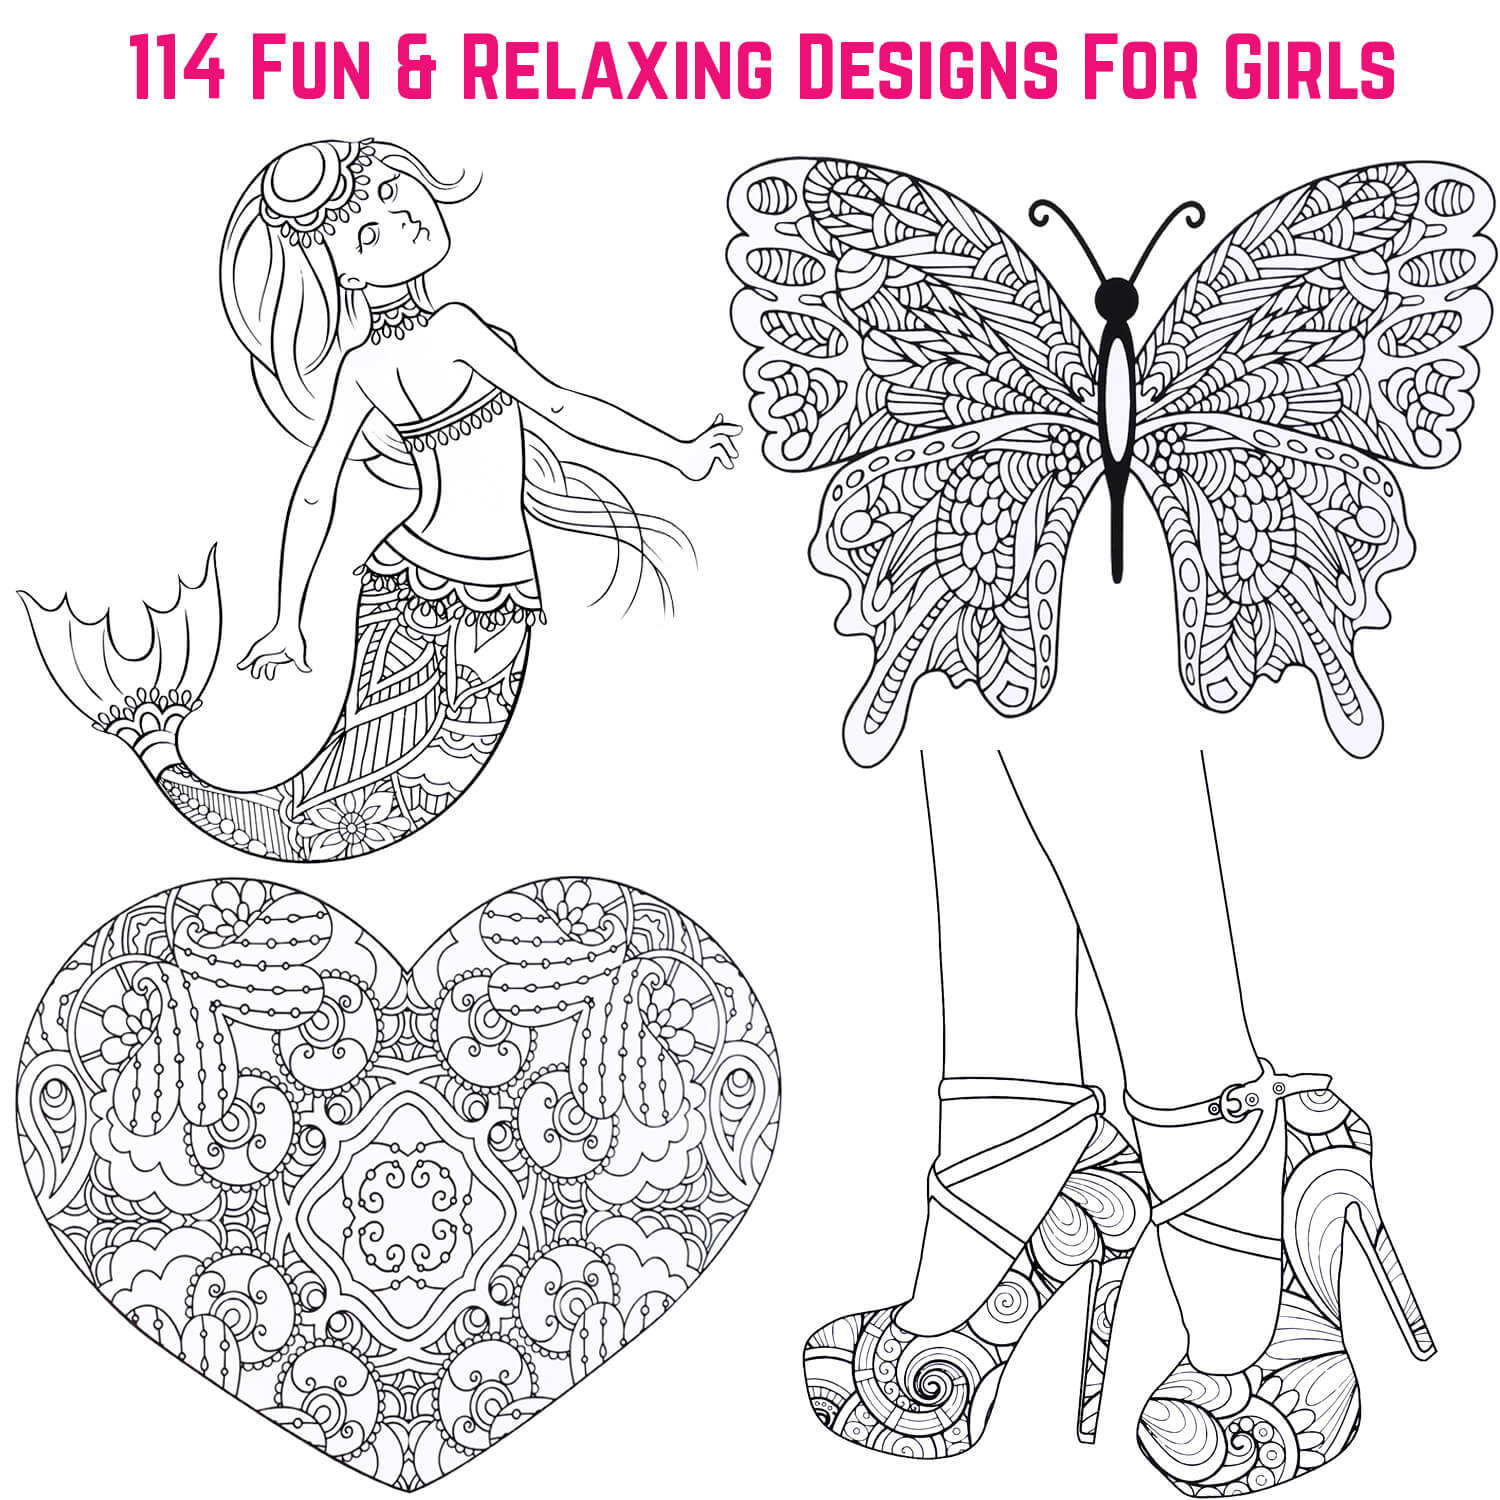 Relaxation Coloring Book - GirlZone US